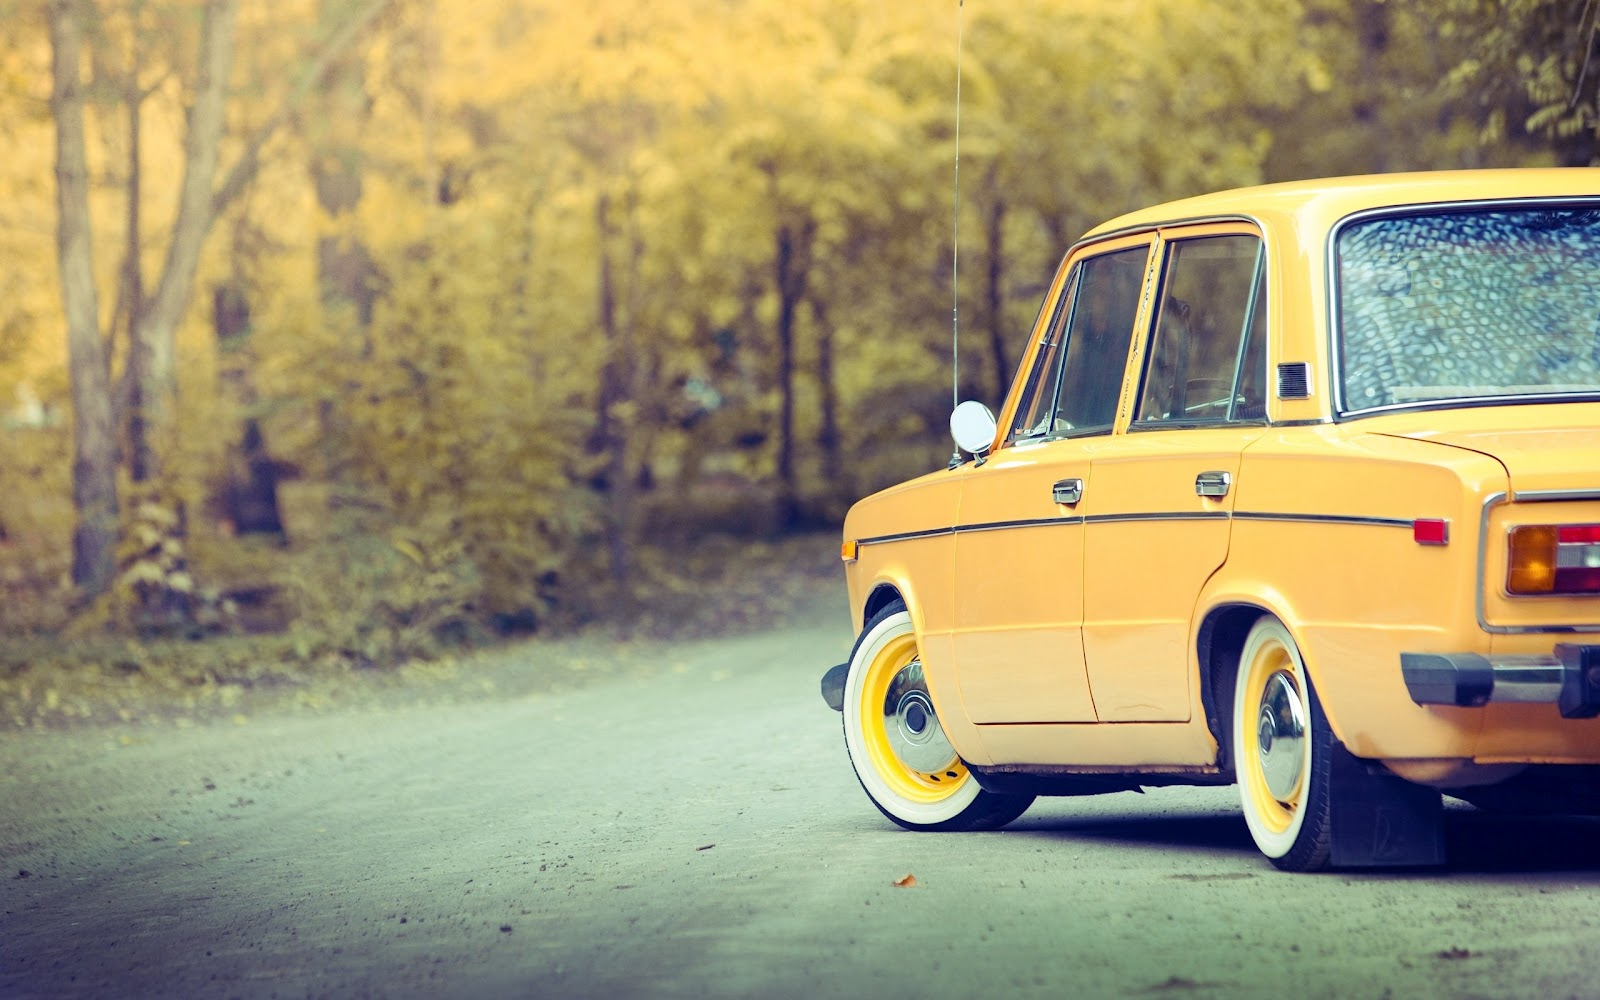 VIntage cars Russian old Lada on the road wallpaper The Wallpaper 1600x1000